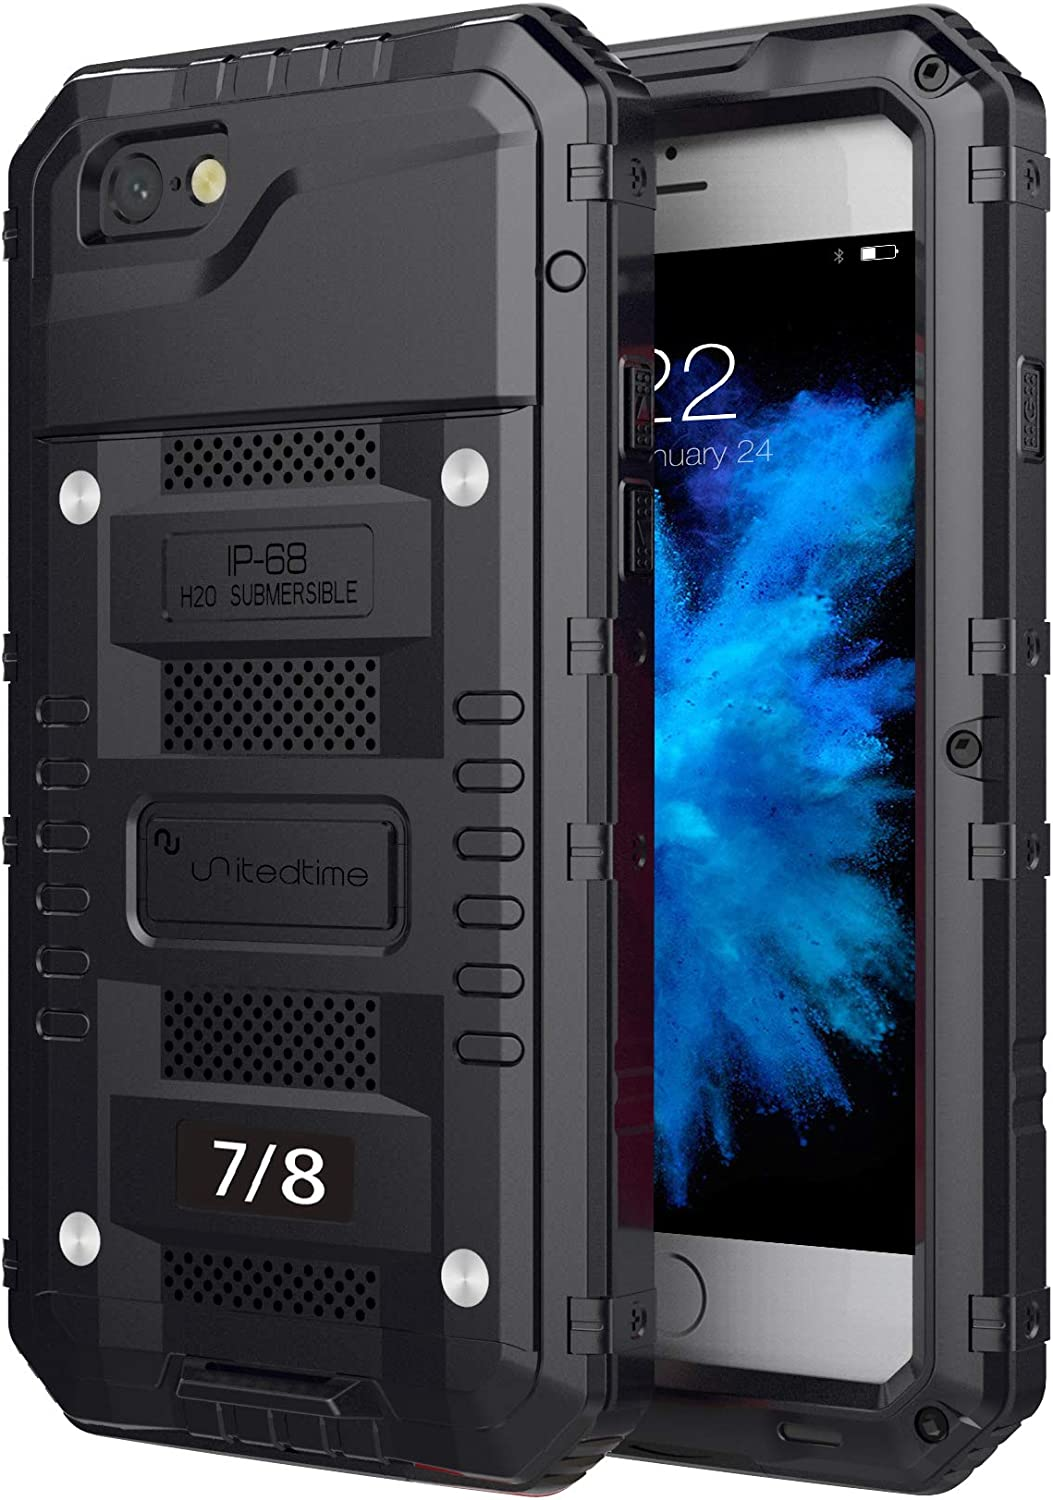 """Waterproof Heavy Duty Protective Case for iPhone 7 /iPhone 8 /SE 2020, 4.7"""" Inch with Aluminum Frame Body Rugged Hard Silicone, Military Grade with Built-in Screen Protector Drop Defend (Black)"""